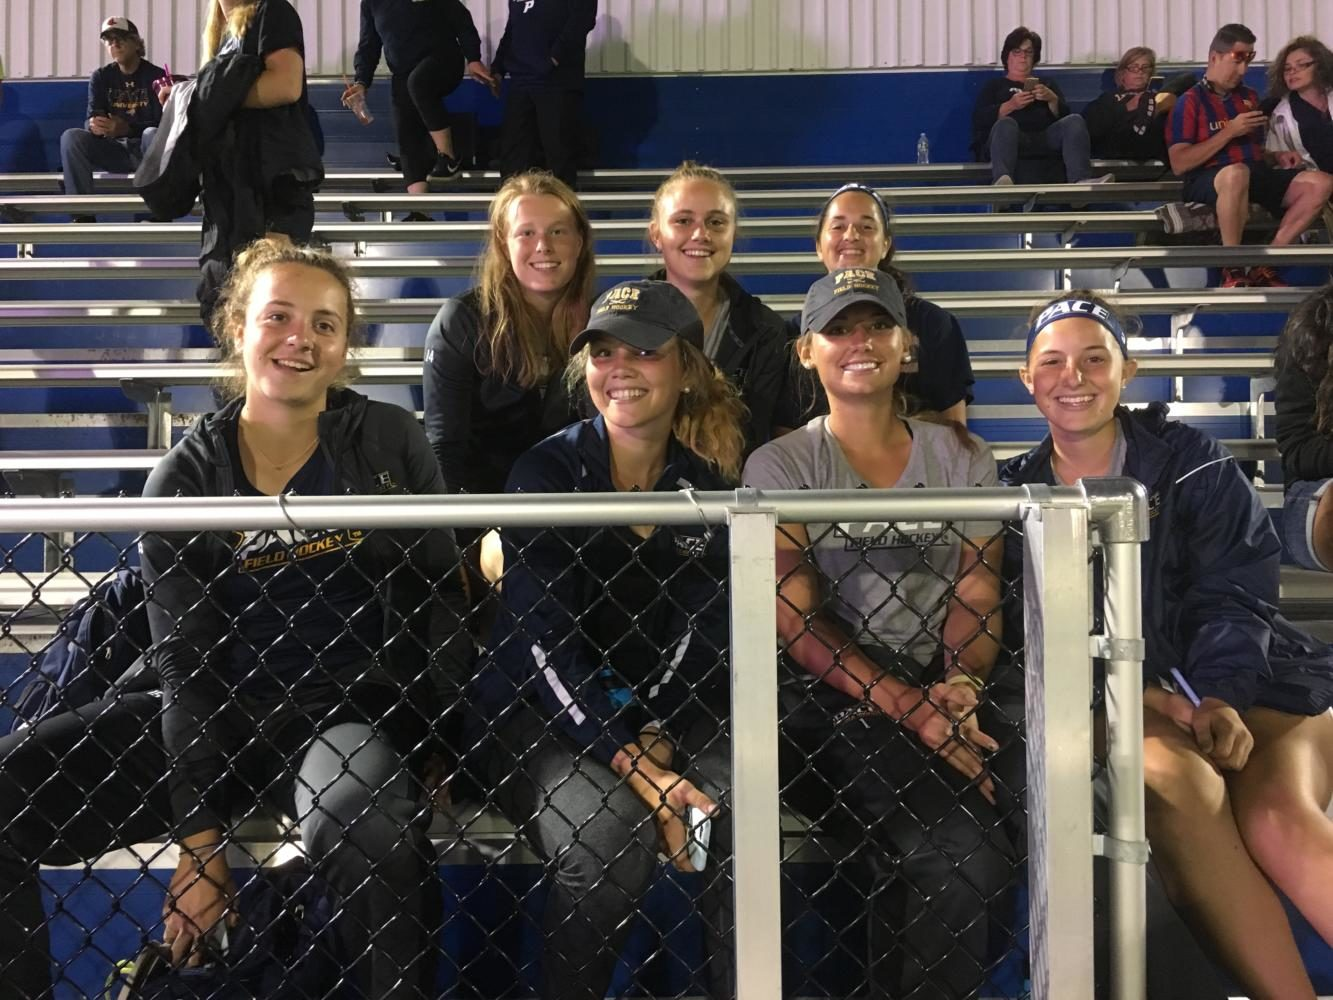 Some+fans+from+the+field+hockey+team+coming+to+support+at+the+soccer+game+%28Photo+Courtesy%3A+Kamryn+Gianfrancesco%29